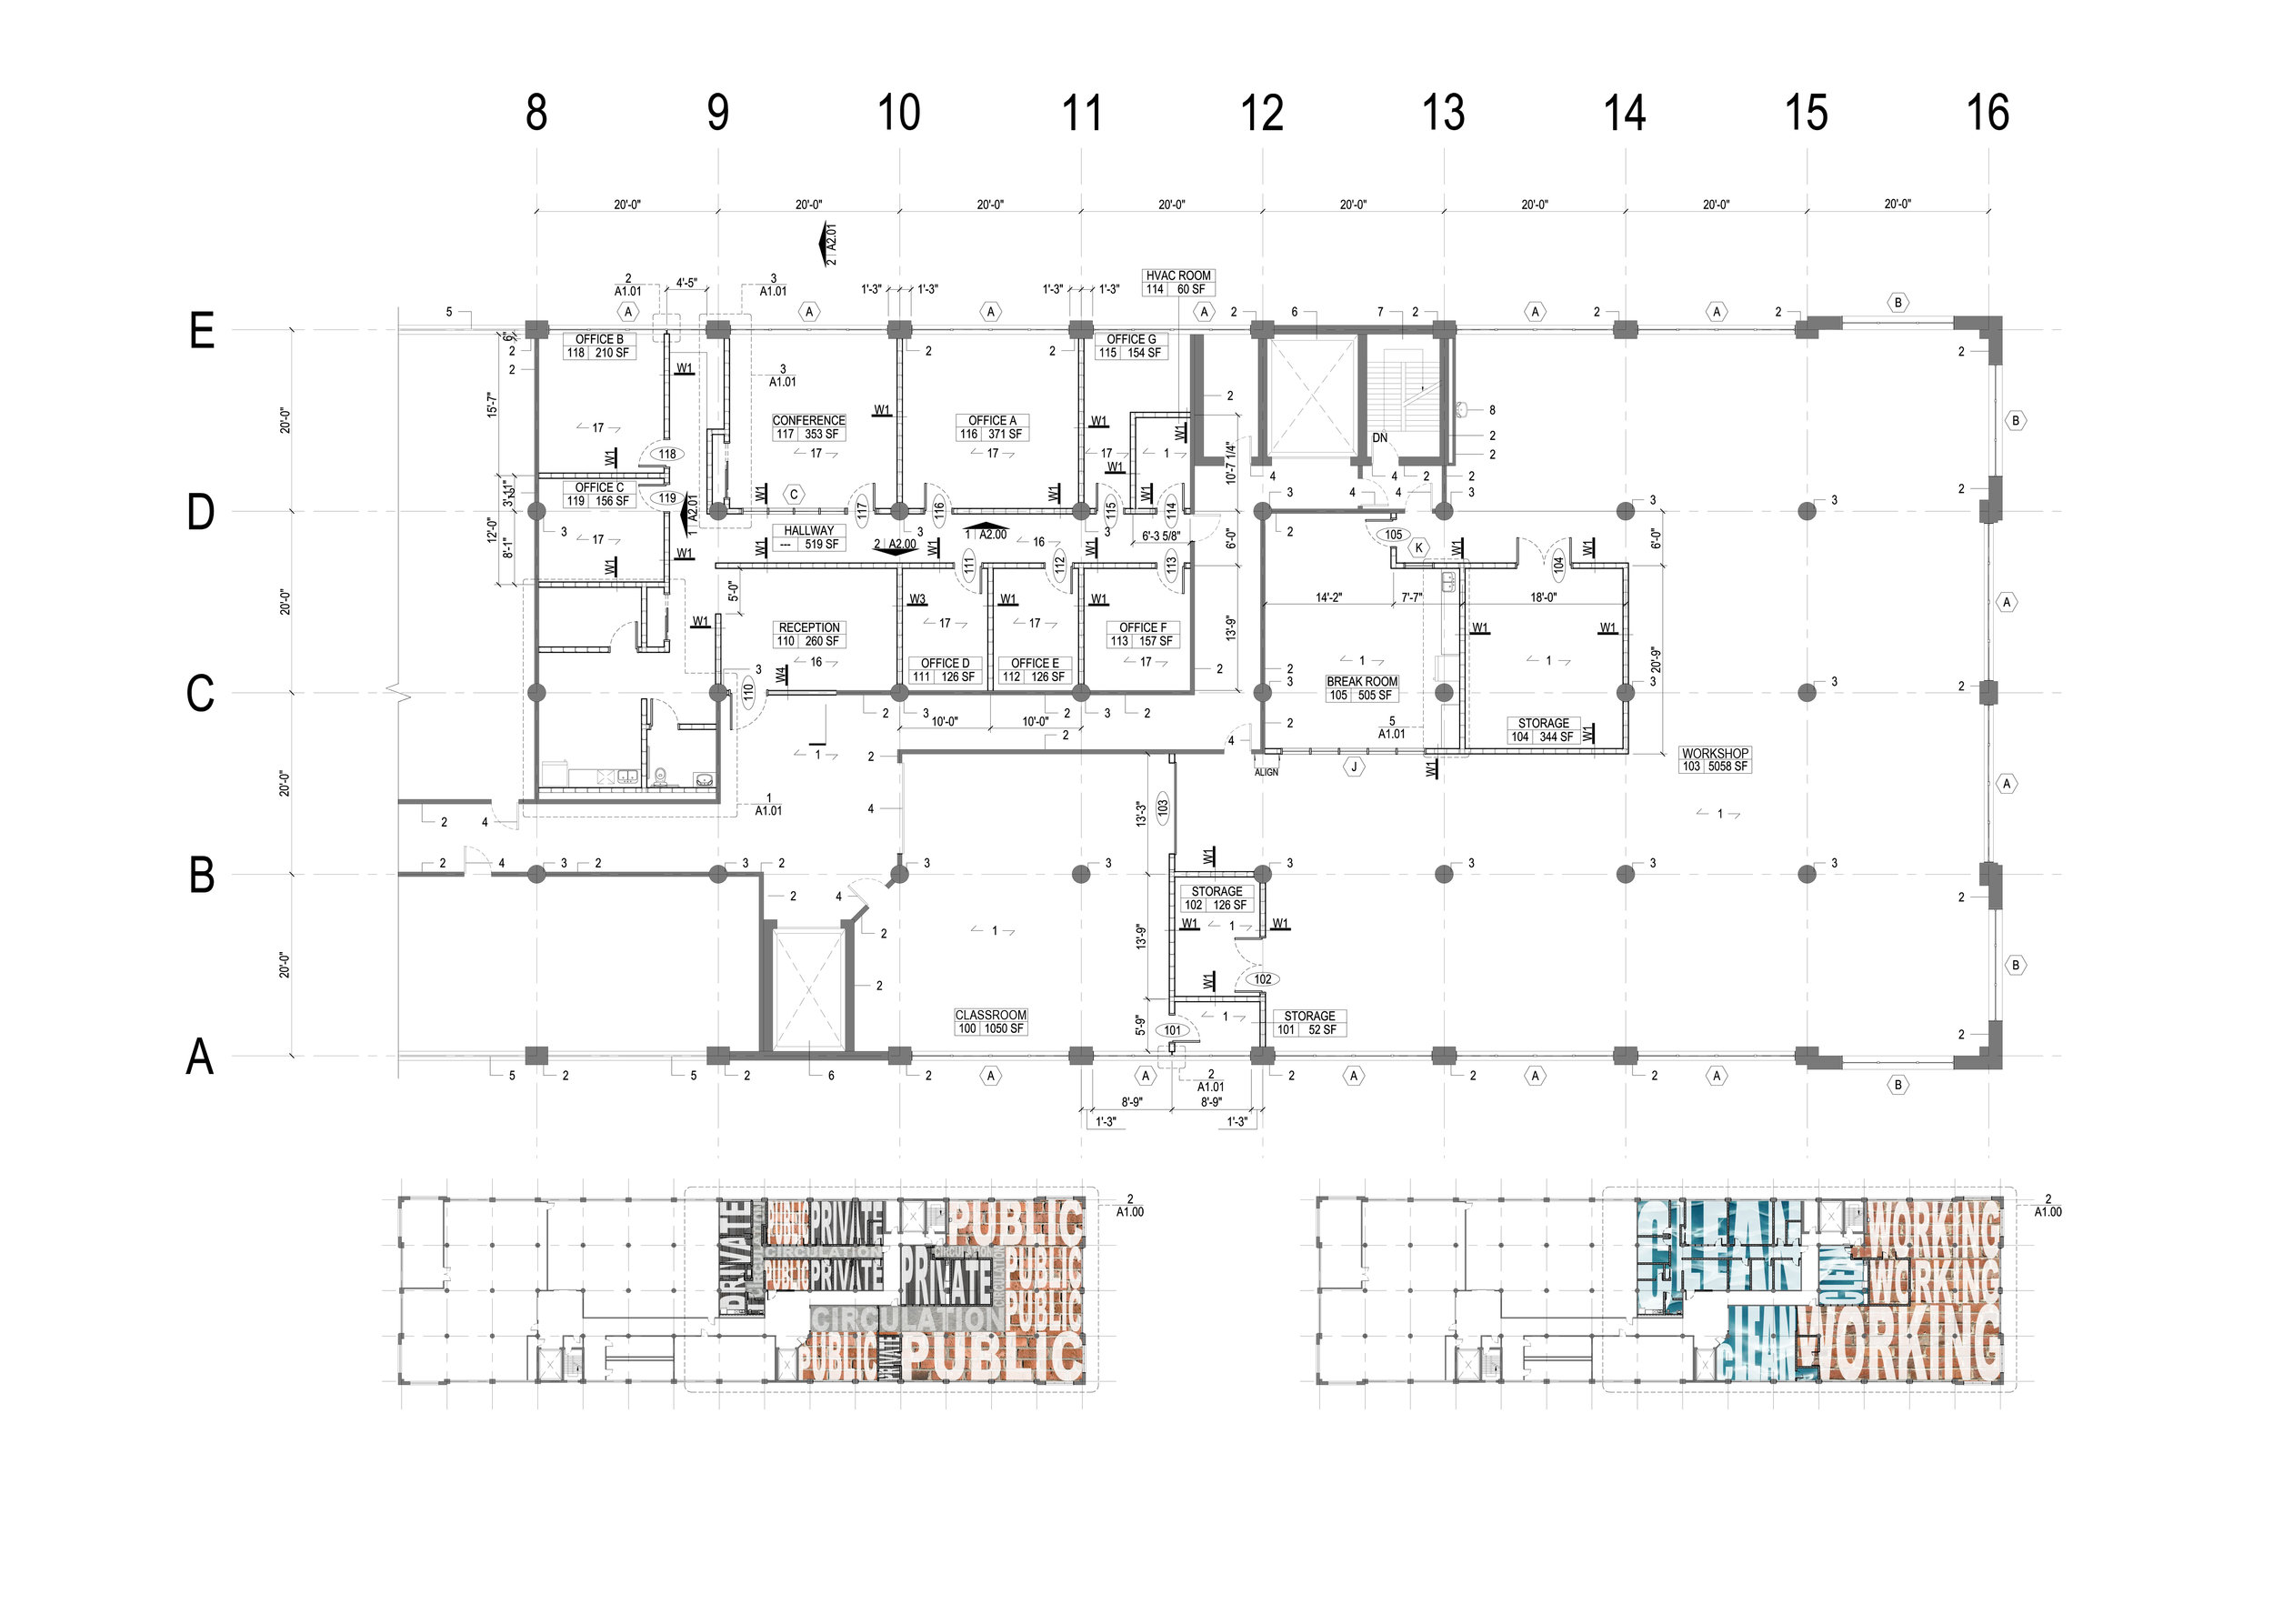 TIP tenant fit-out plan with diagrams for clean vs working space and private, public, and circulation space